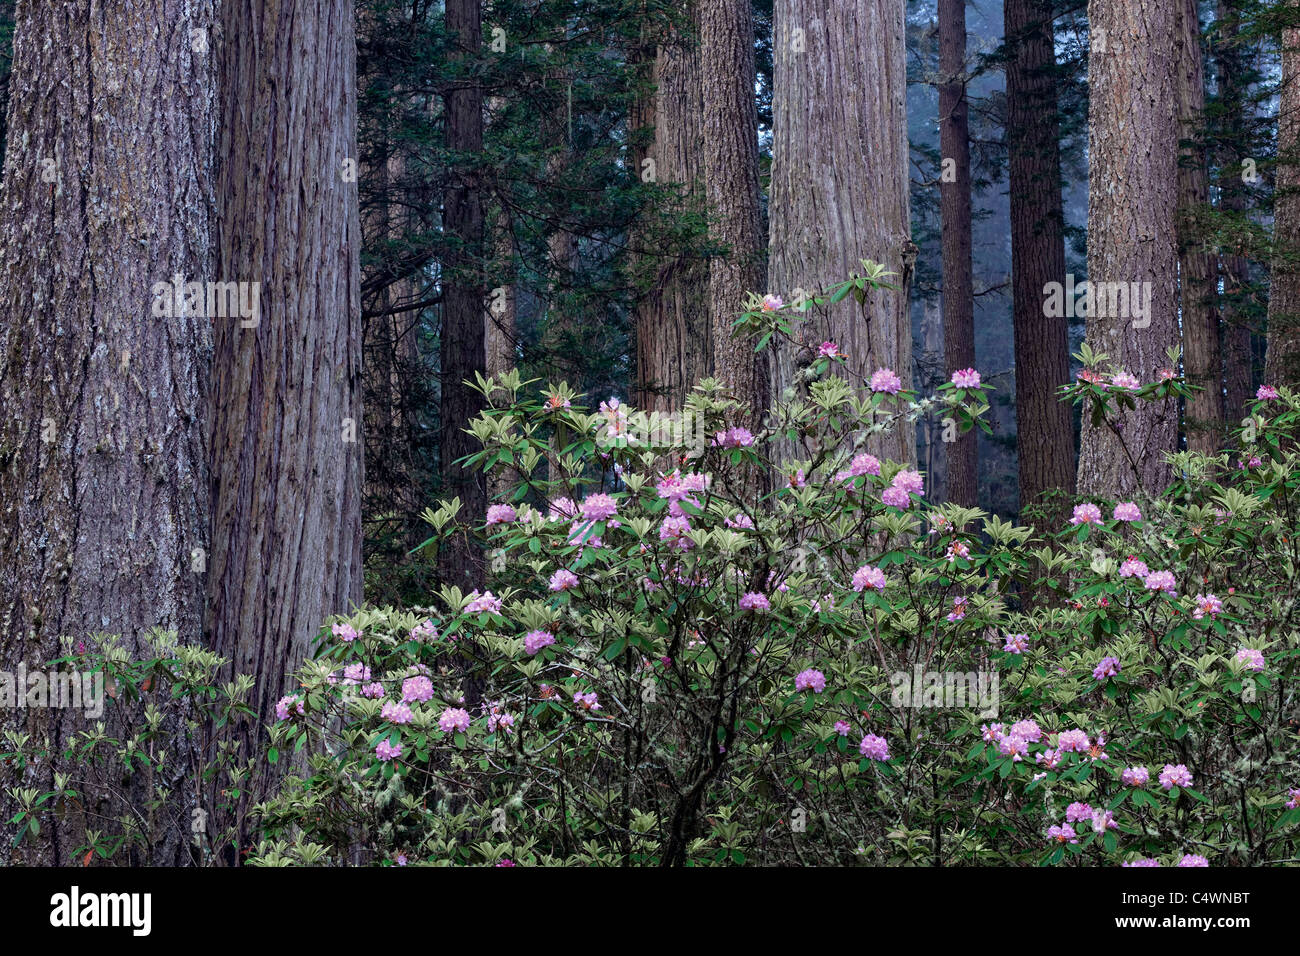 Spring rhododendron bloom among the redwood trees in California's Del Norte Coast Redwoods State and National Parks. Stock Photo